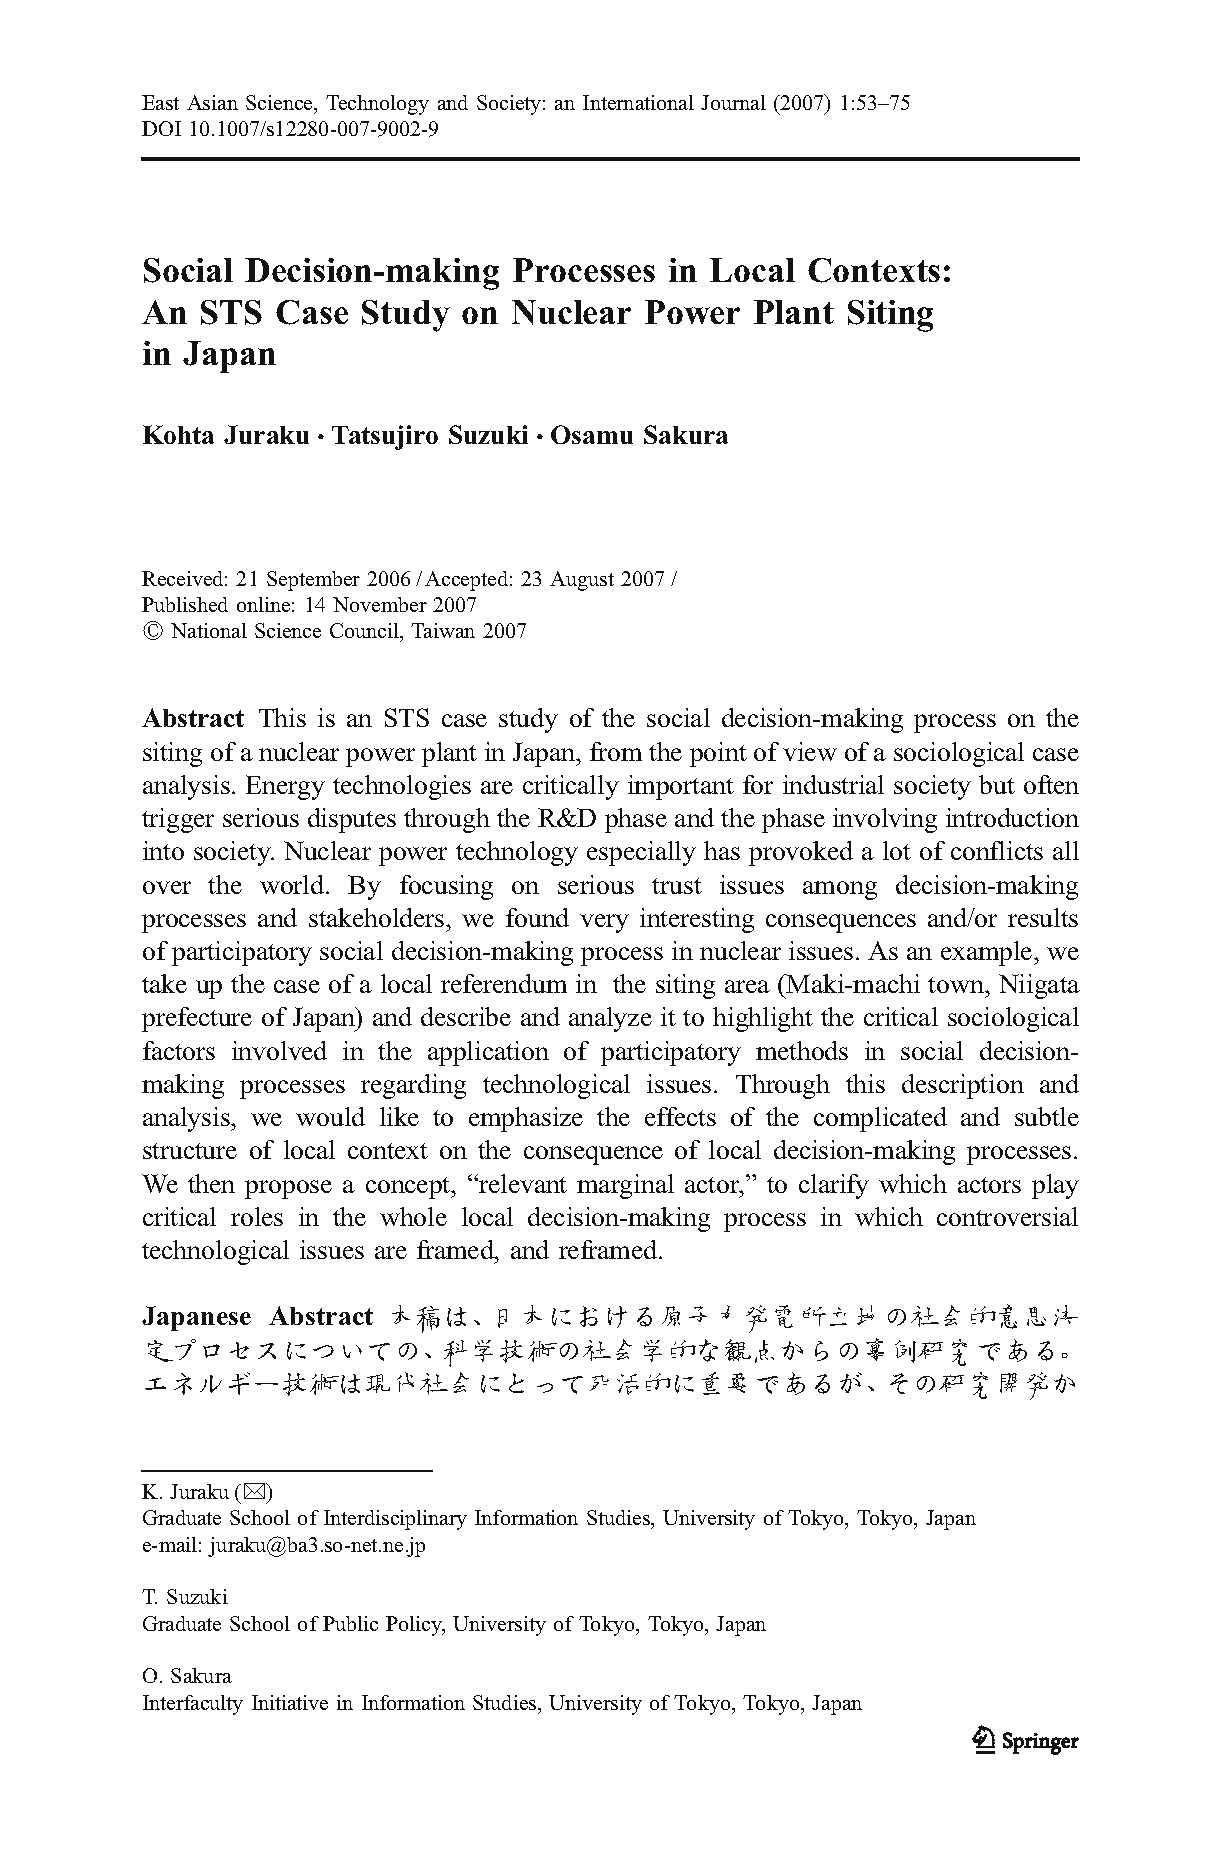 ARTICLE: Social Decision-making Processes in Local Contexts: An STS Case Study on Nuclear Power Plant Siting in Japan (2007)